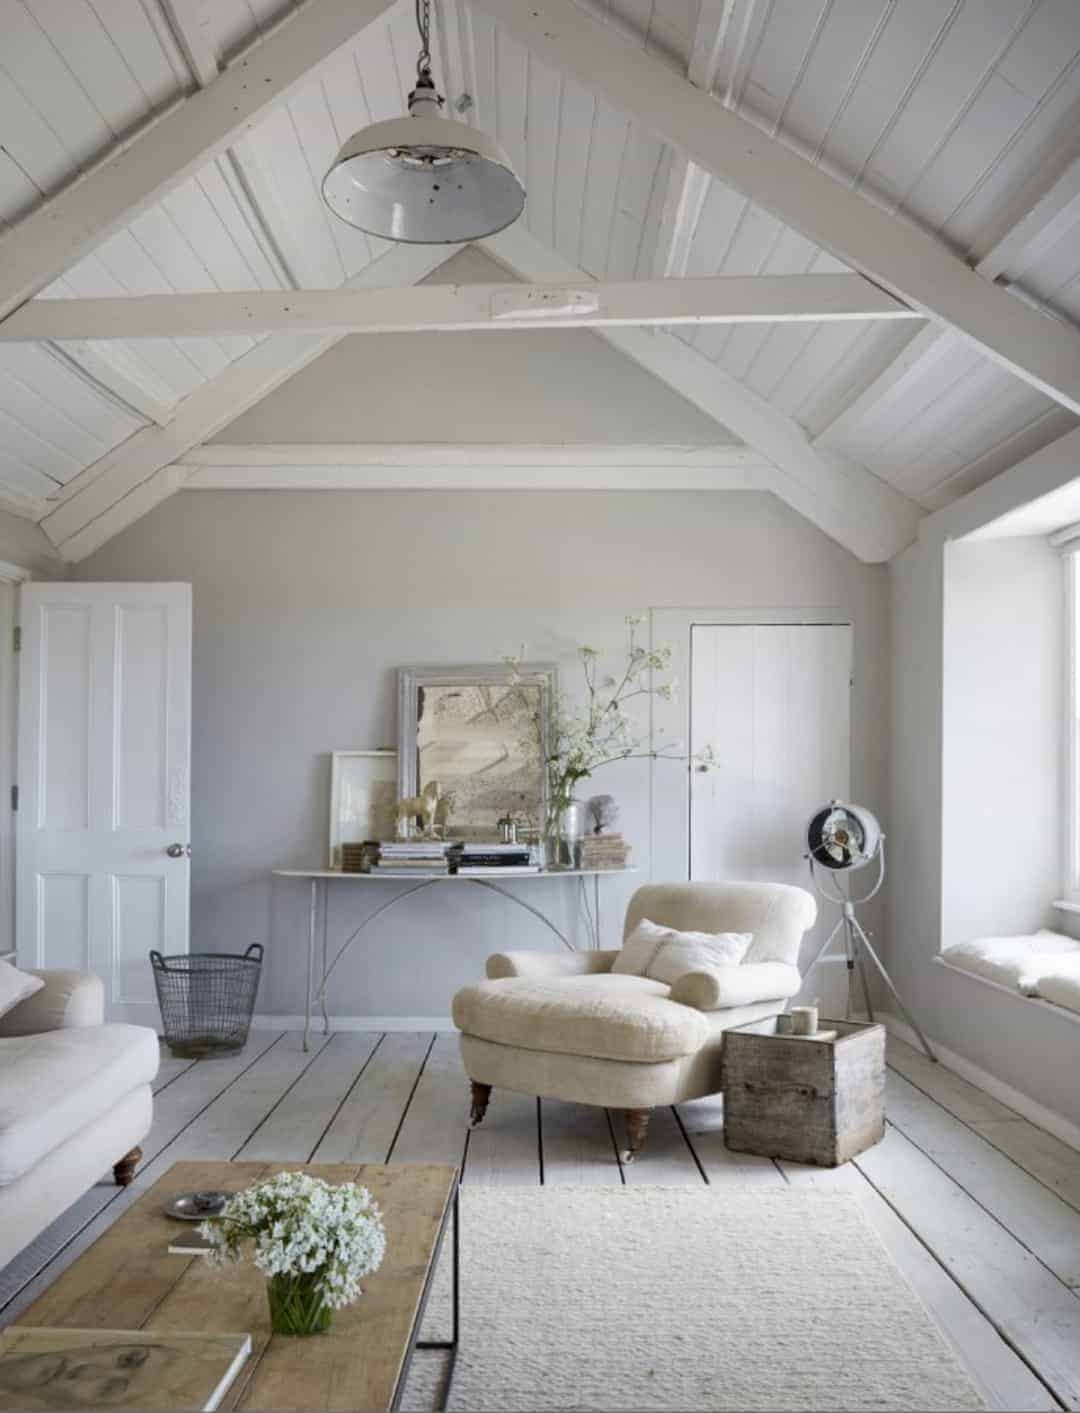 love this seaside coastal vintage loft living room with whitewashed floorbards, vaulted white ceiling and soft grey walls